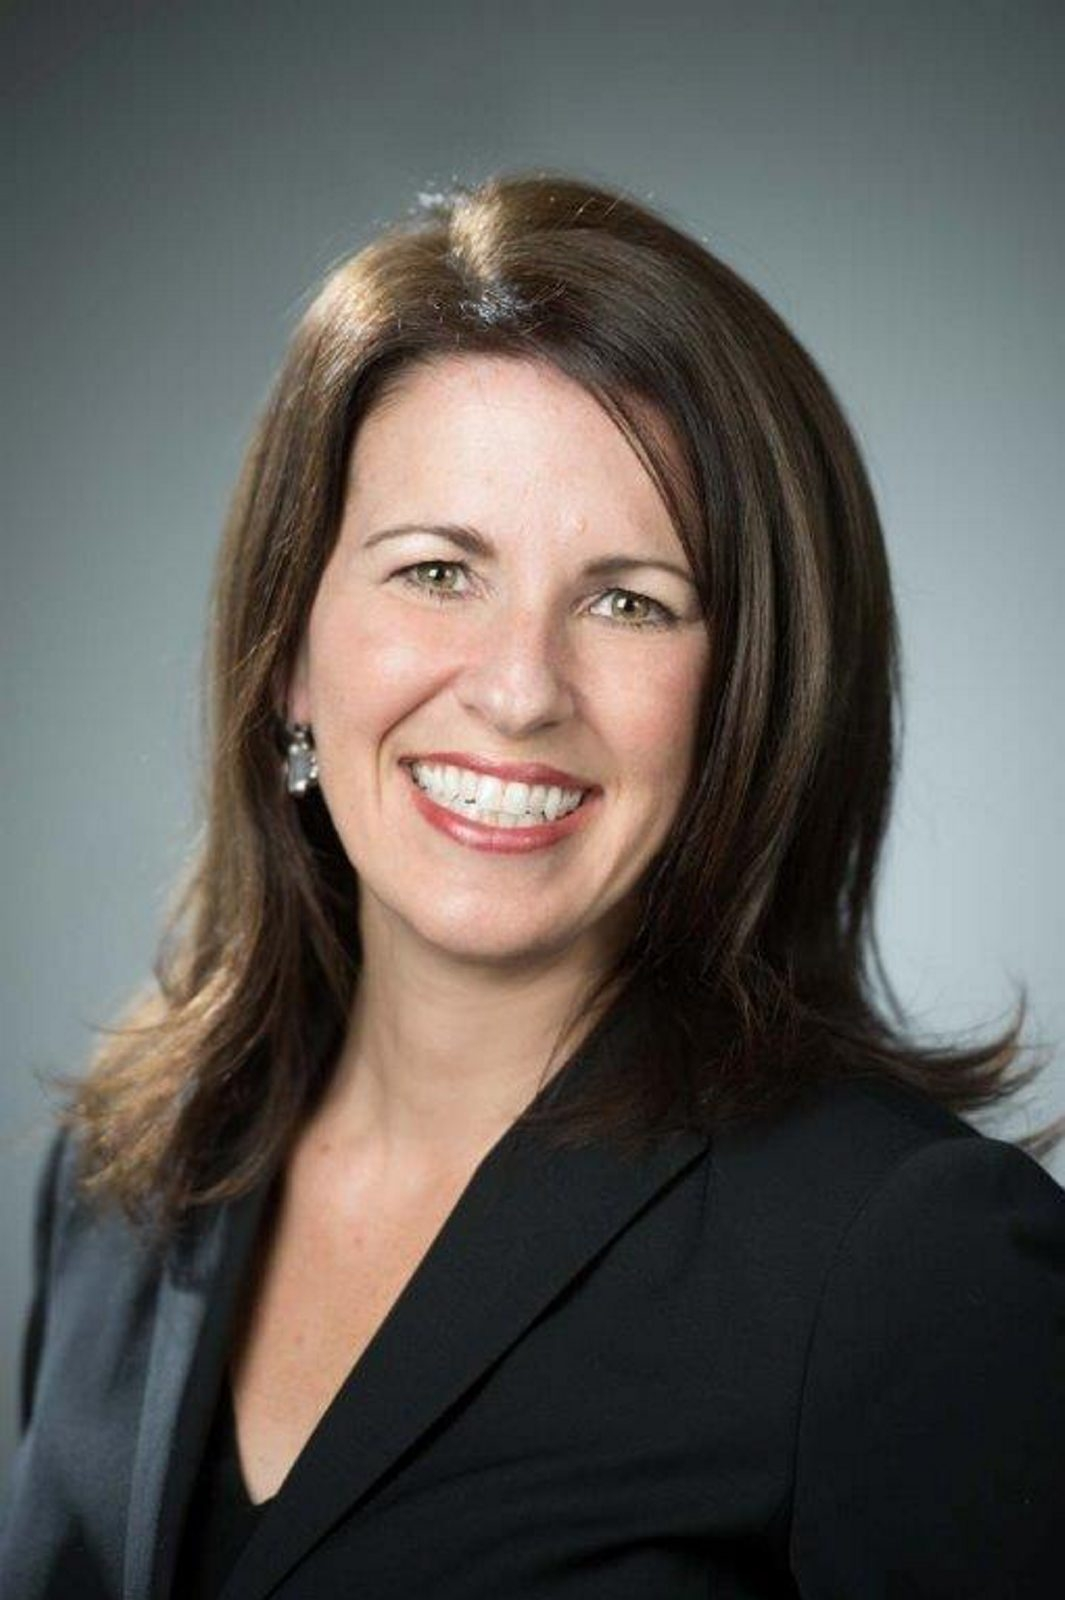 Jane Mogavero was named executive director of the Patrick P. Lee Foundation.